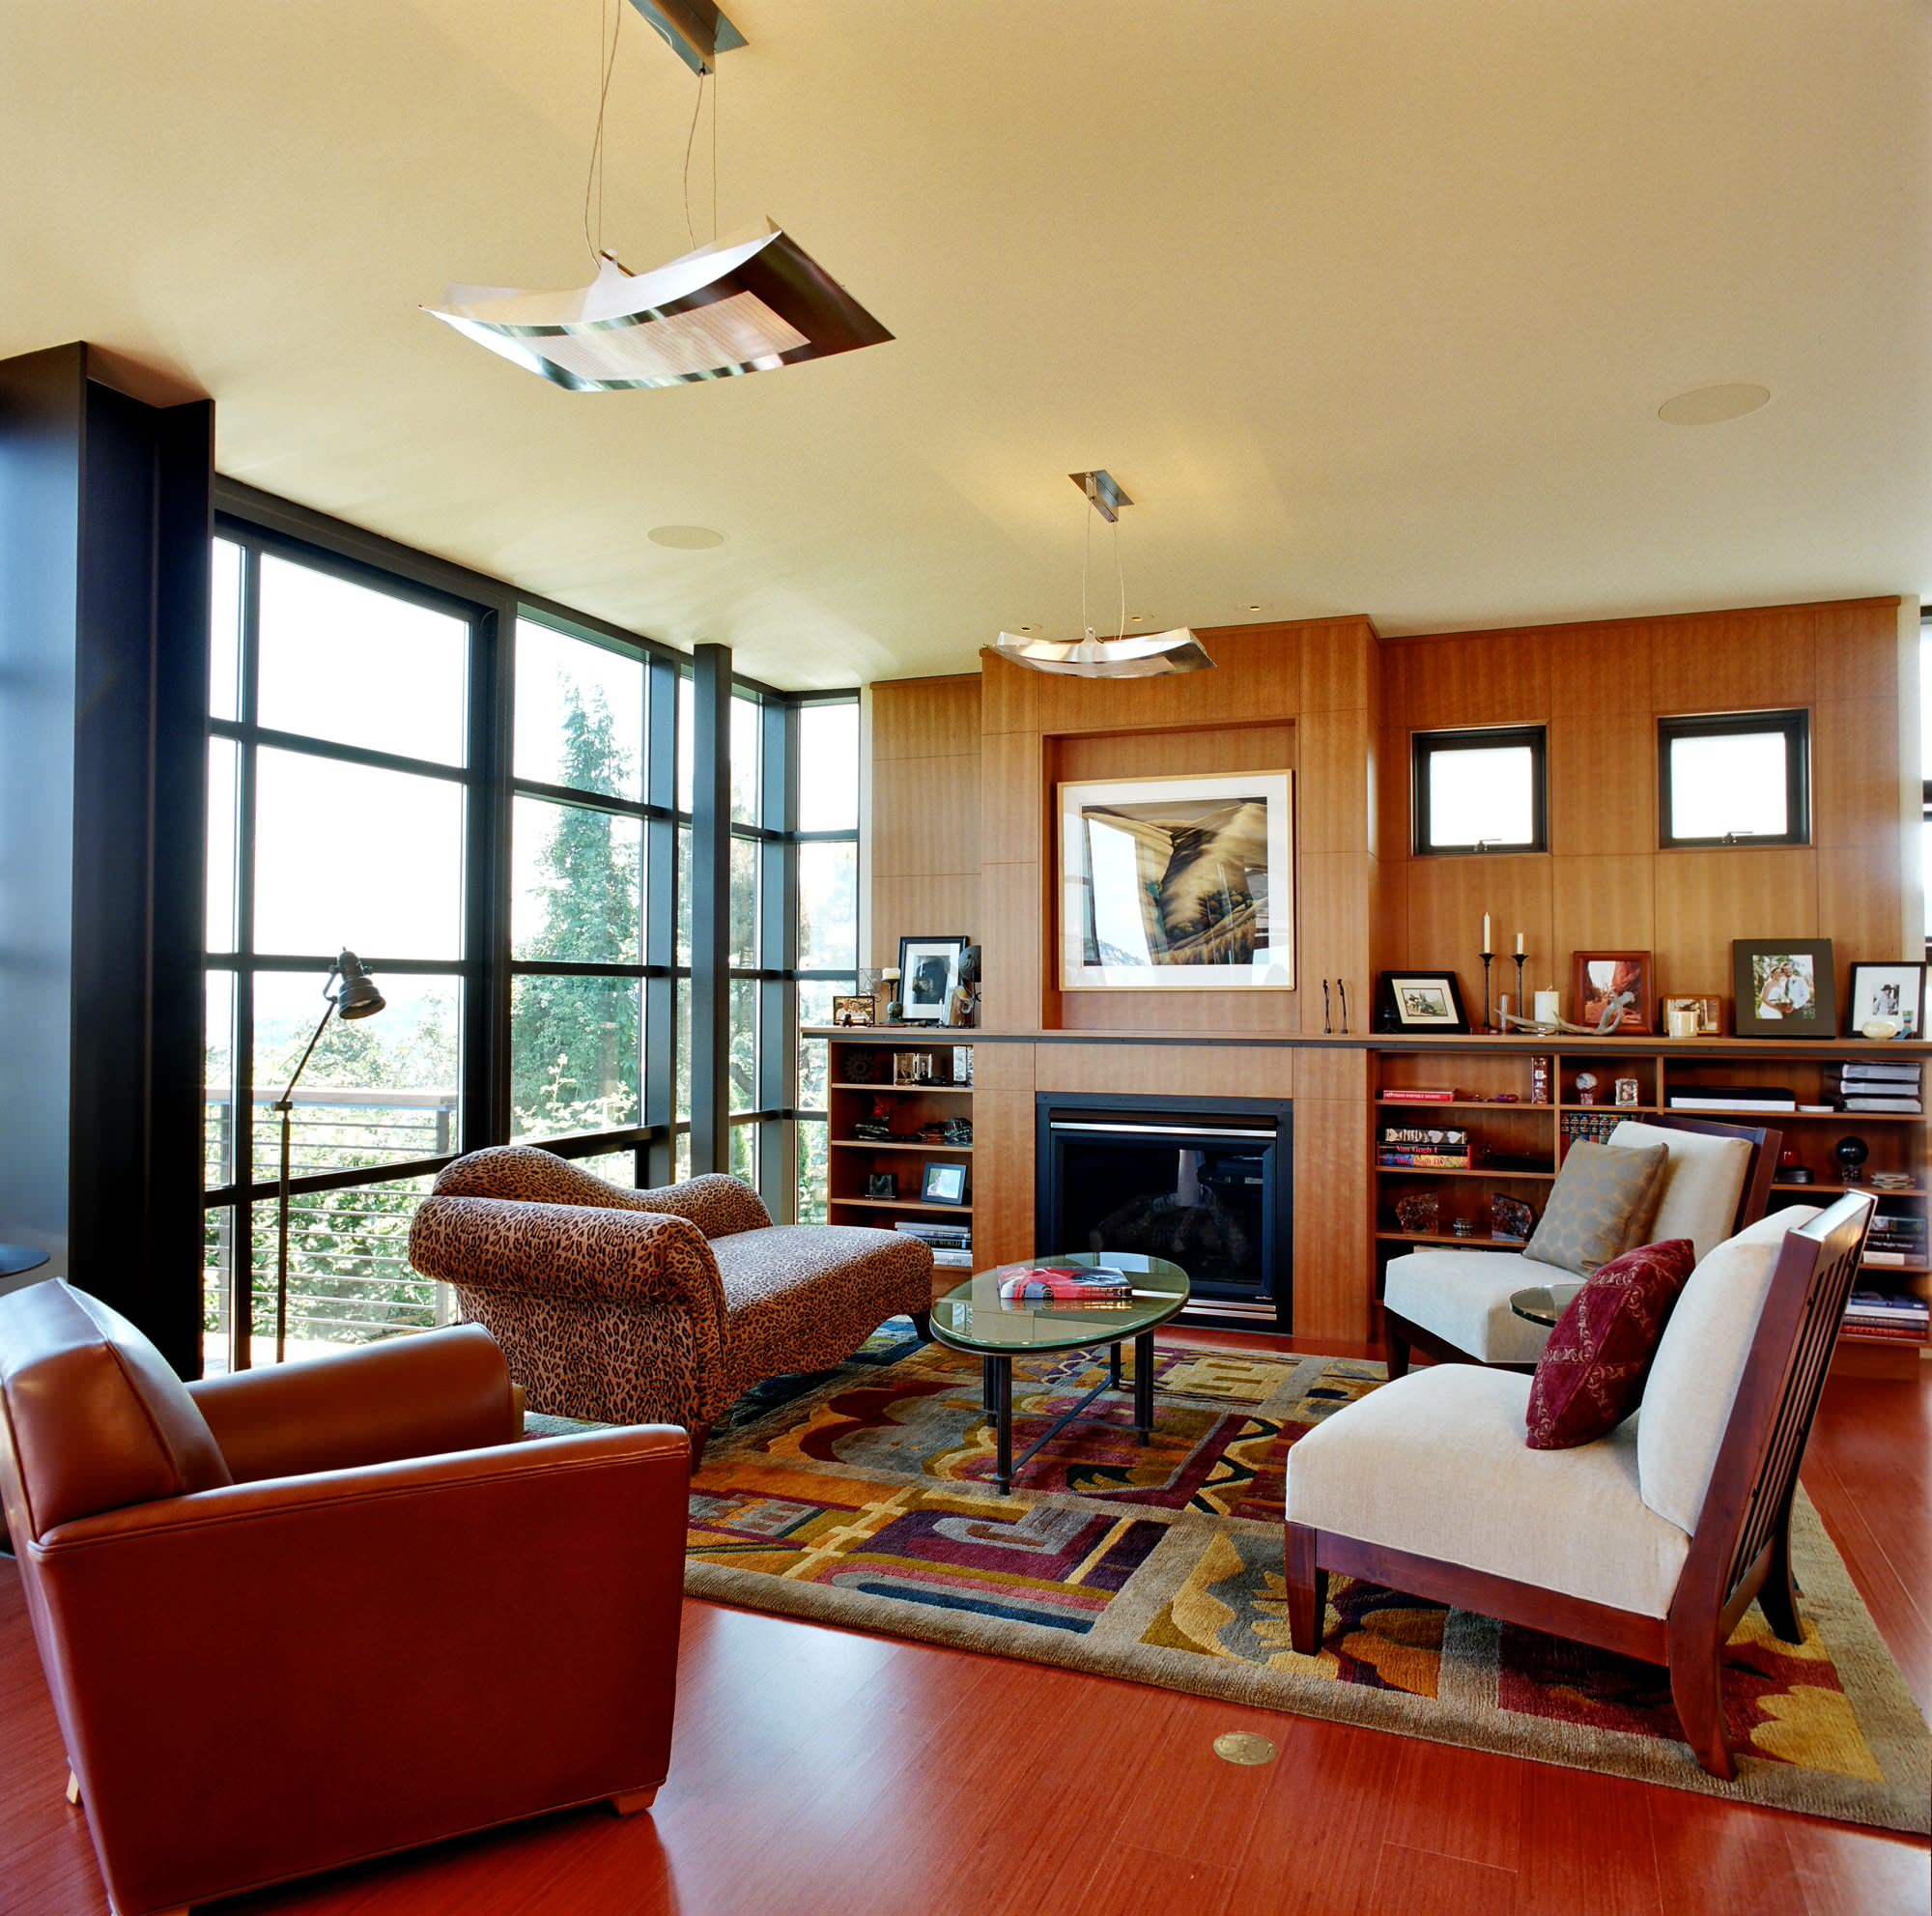 75 Beautiful Red Living Room Pictures Ideas January 2021 Houzz